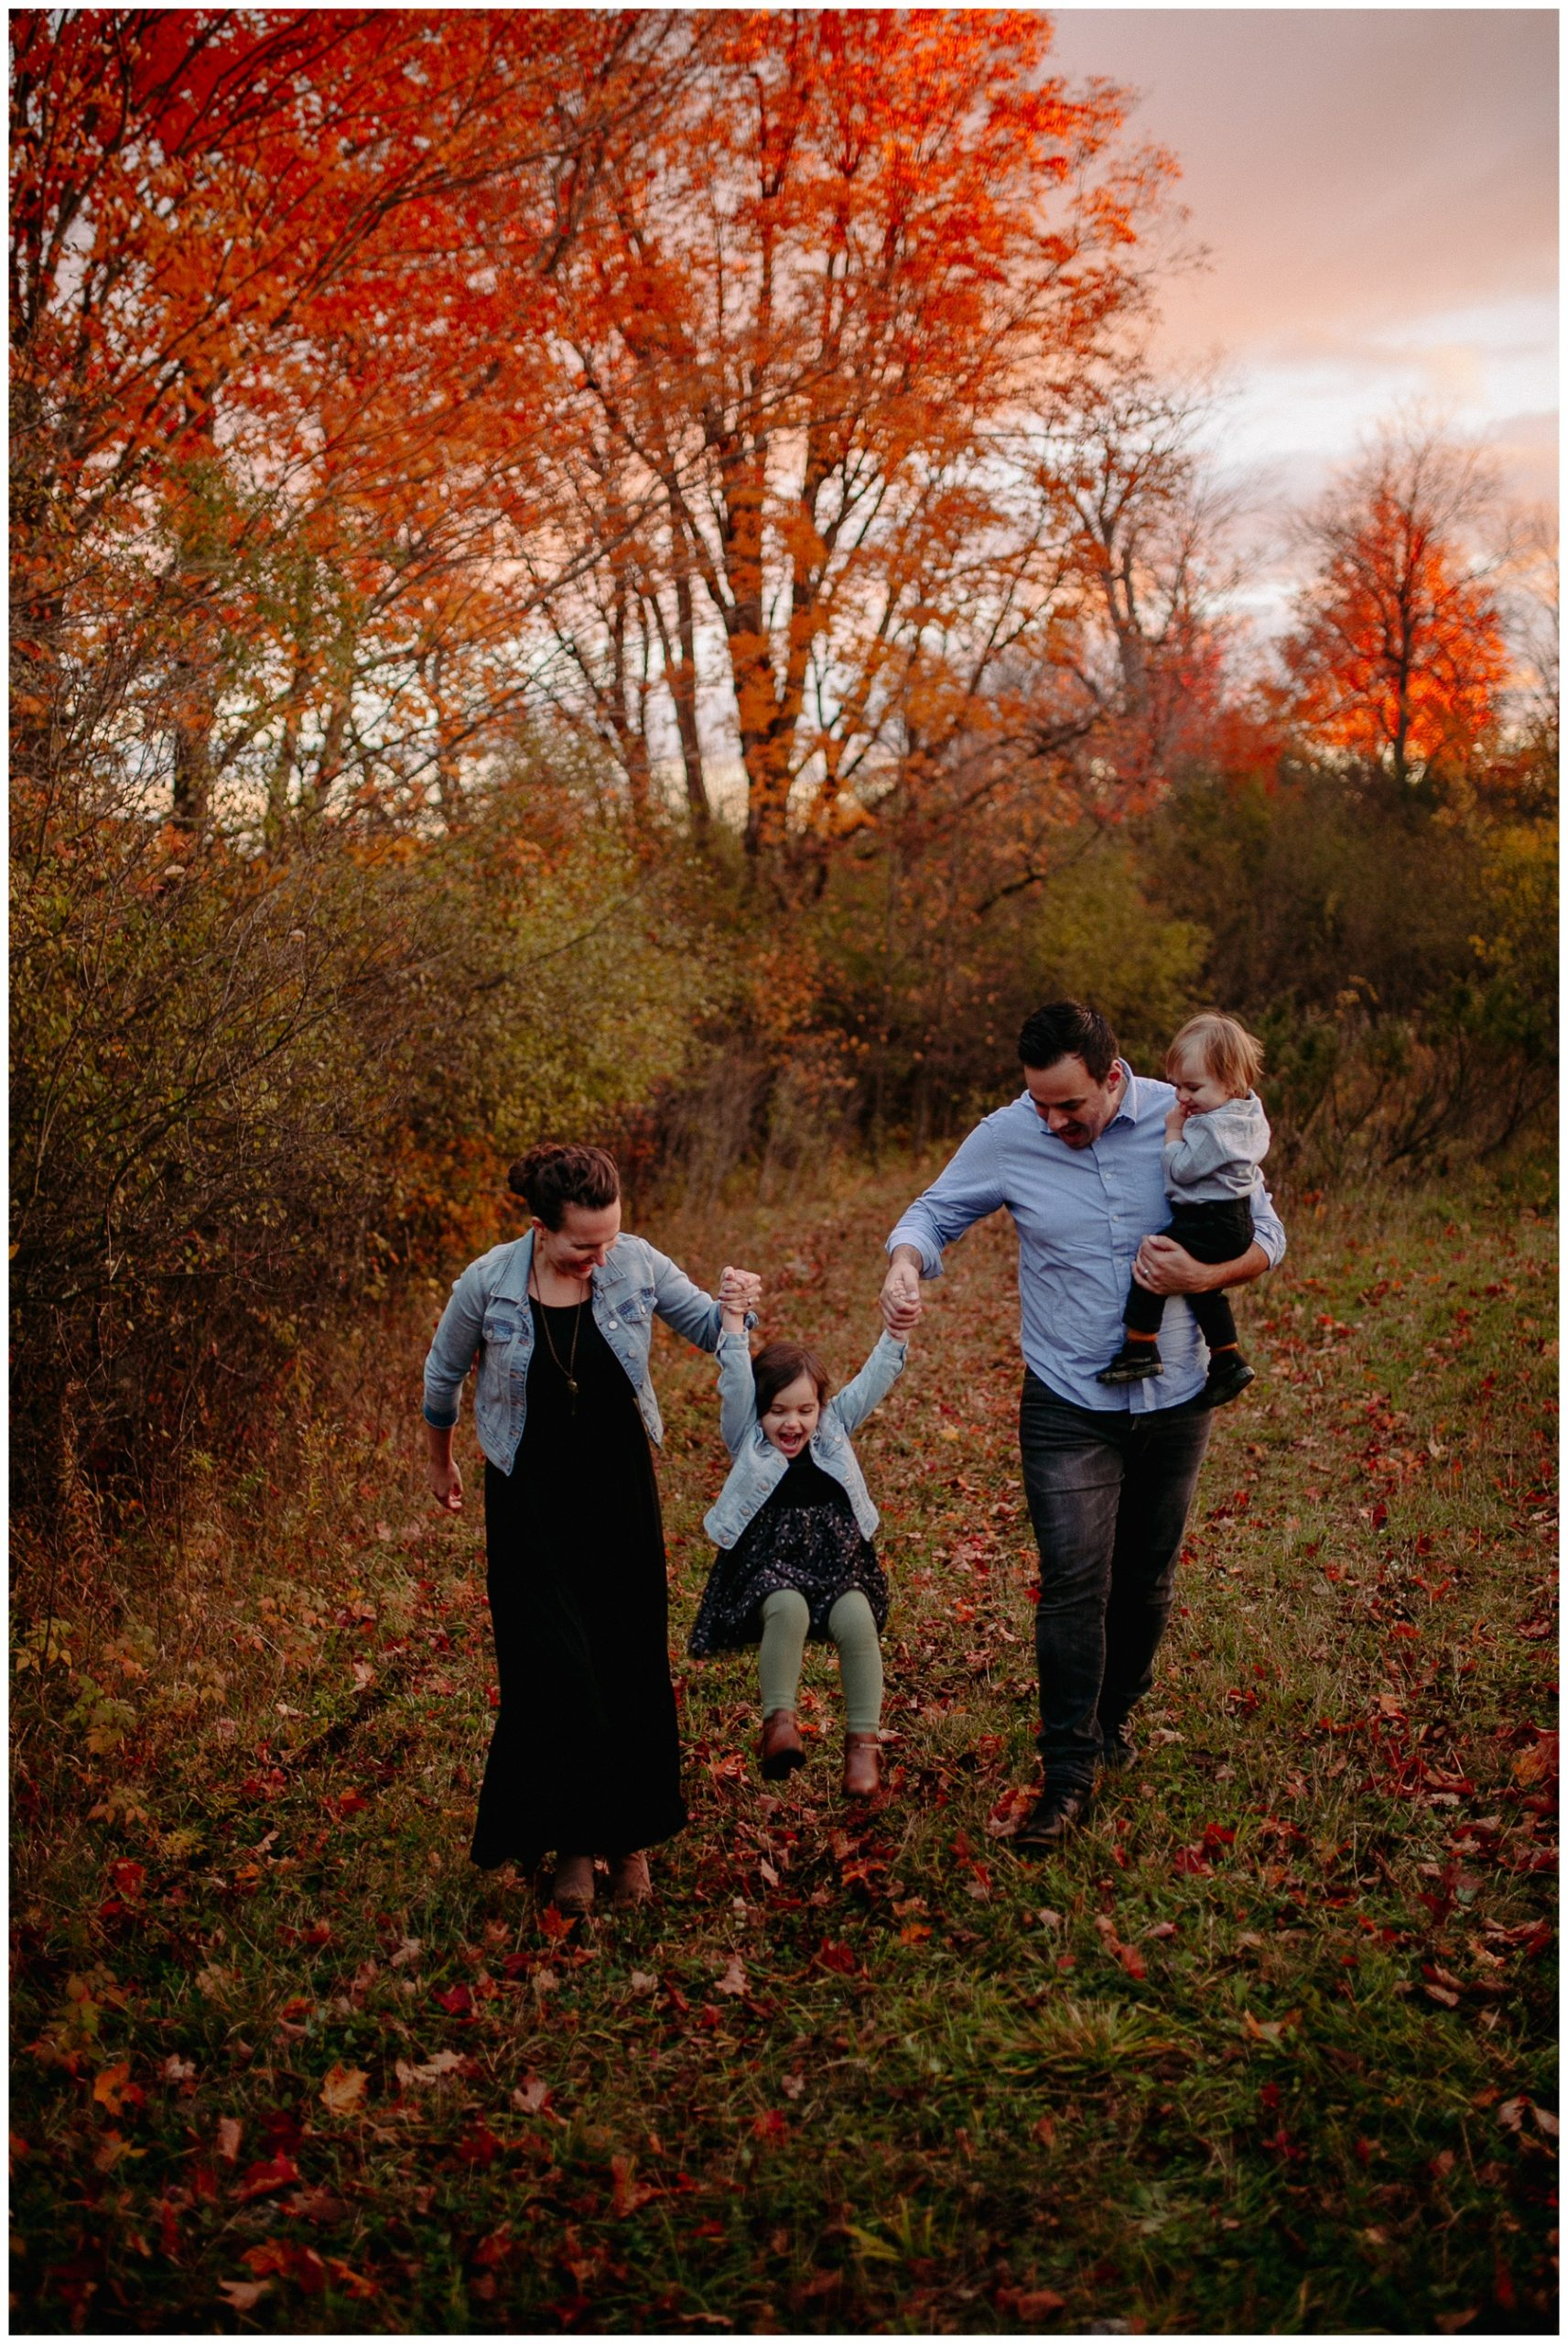 kerry ford photography - fall autumn family session perth034.jpg